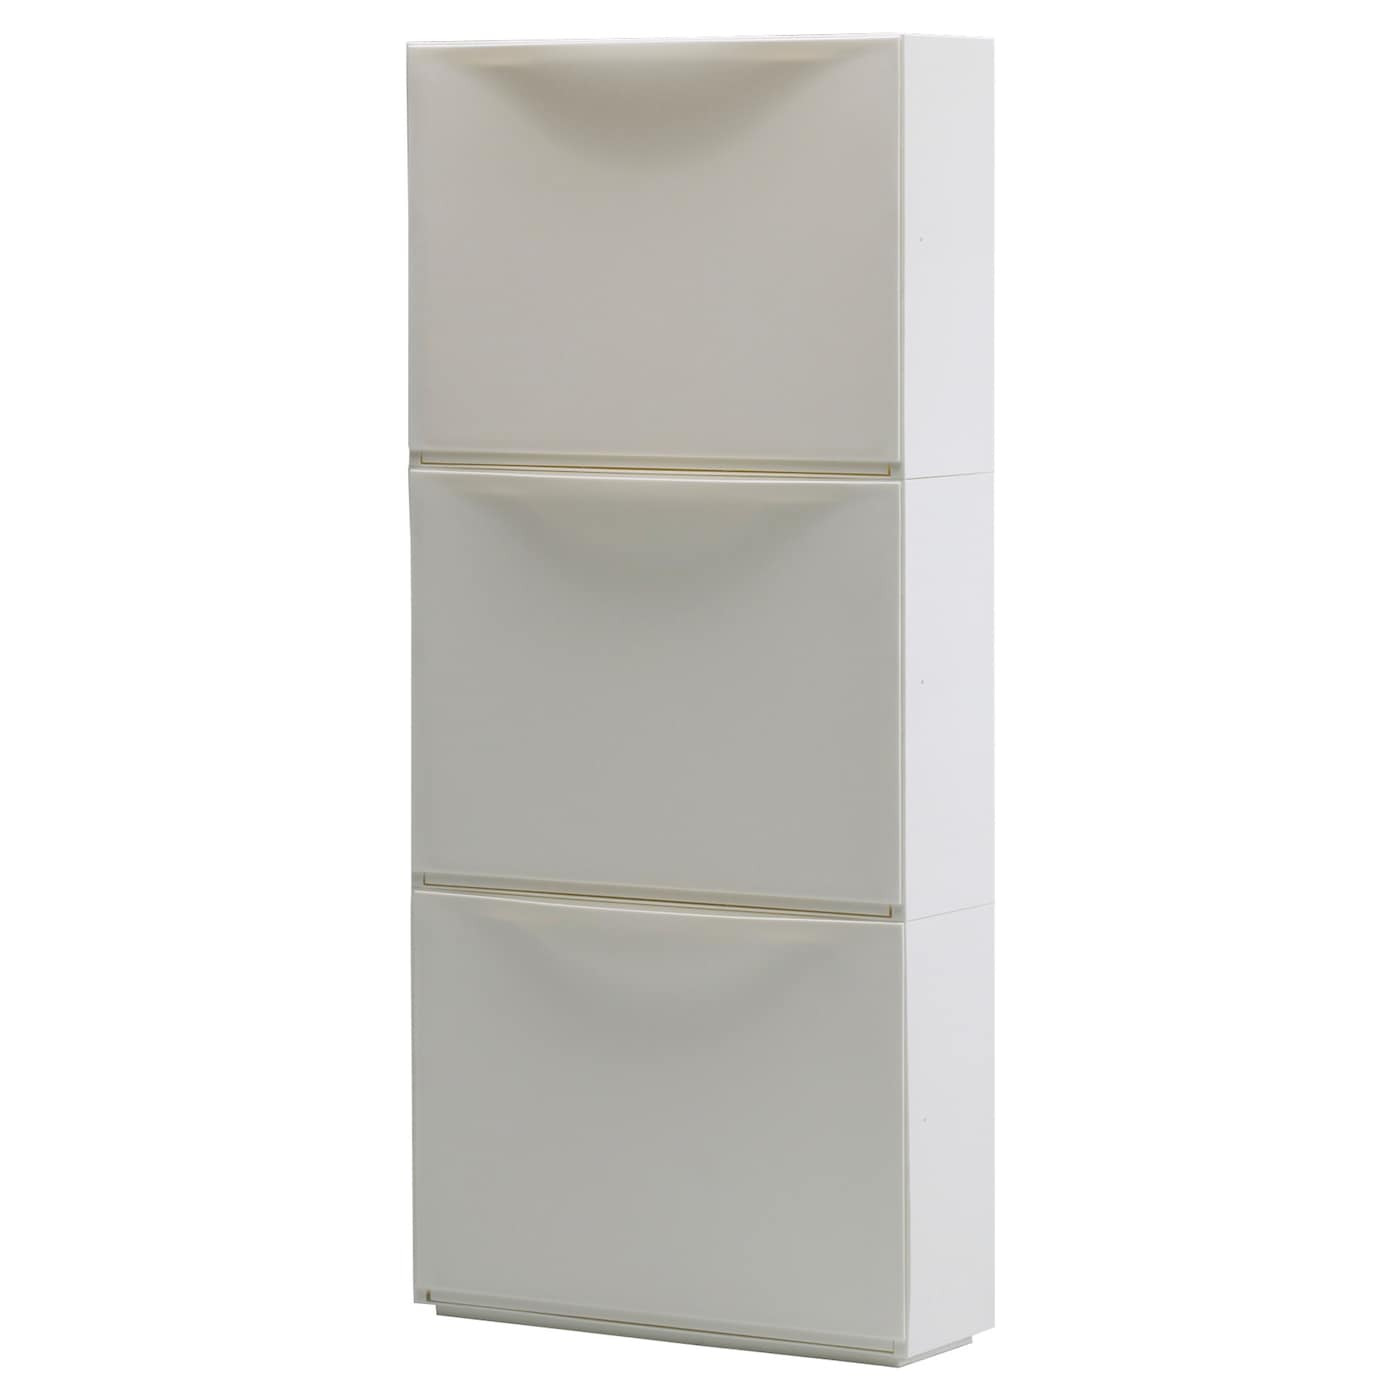 Trones shoe cabinet storage white 51 x 39 cm ikea for Mueble zapatero plastico